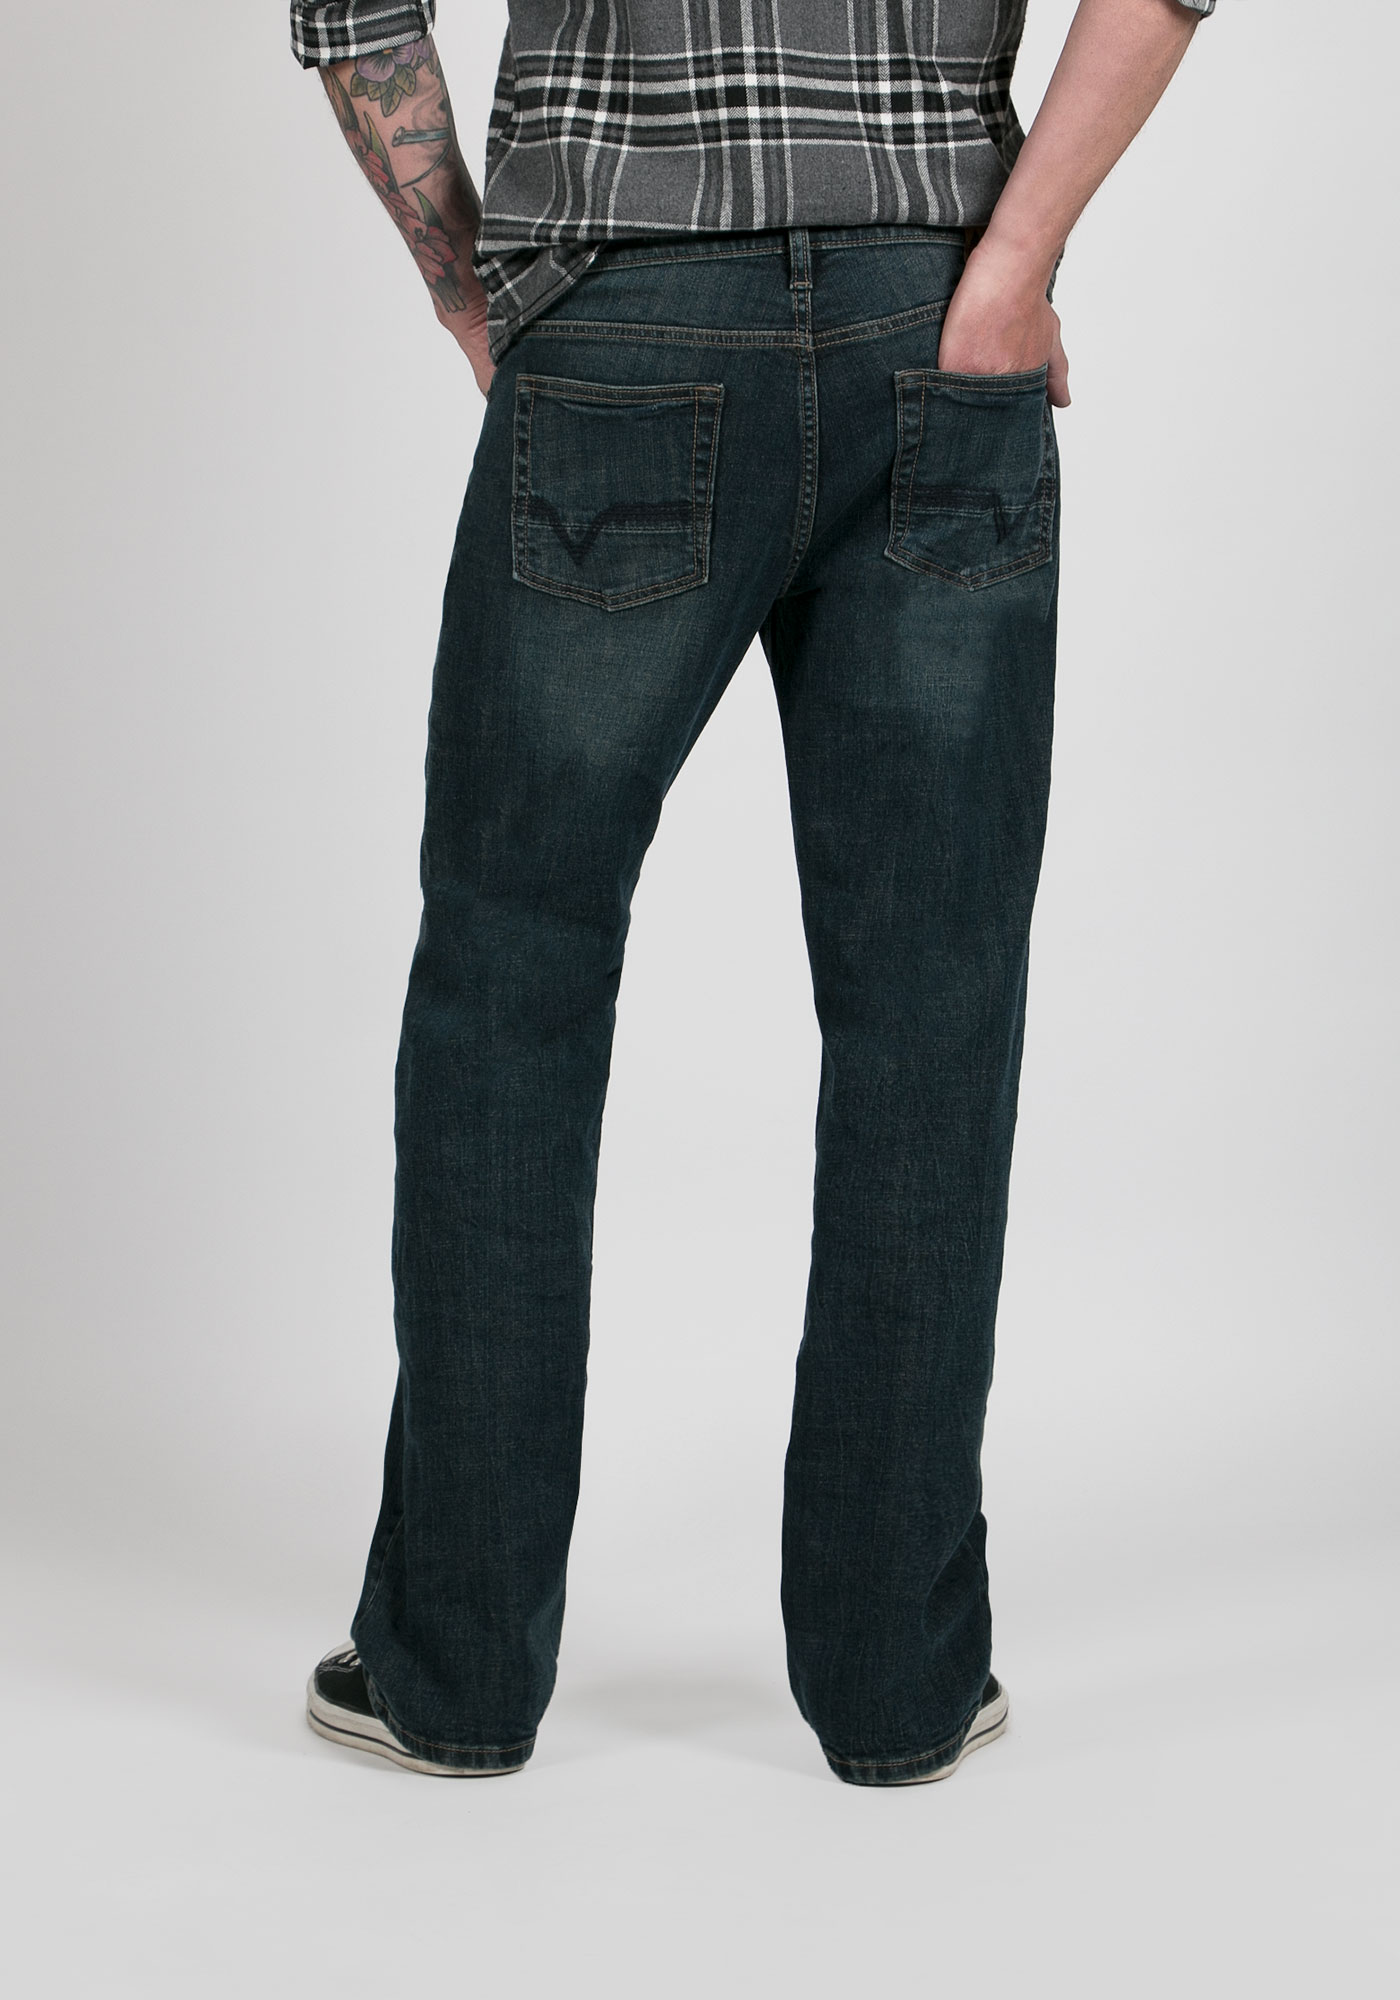 Jeans Size Is Not Equal to Jeans Size